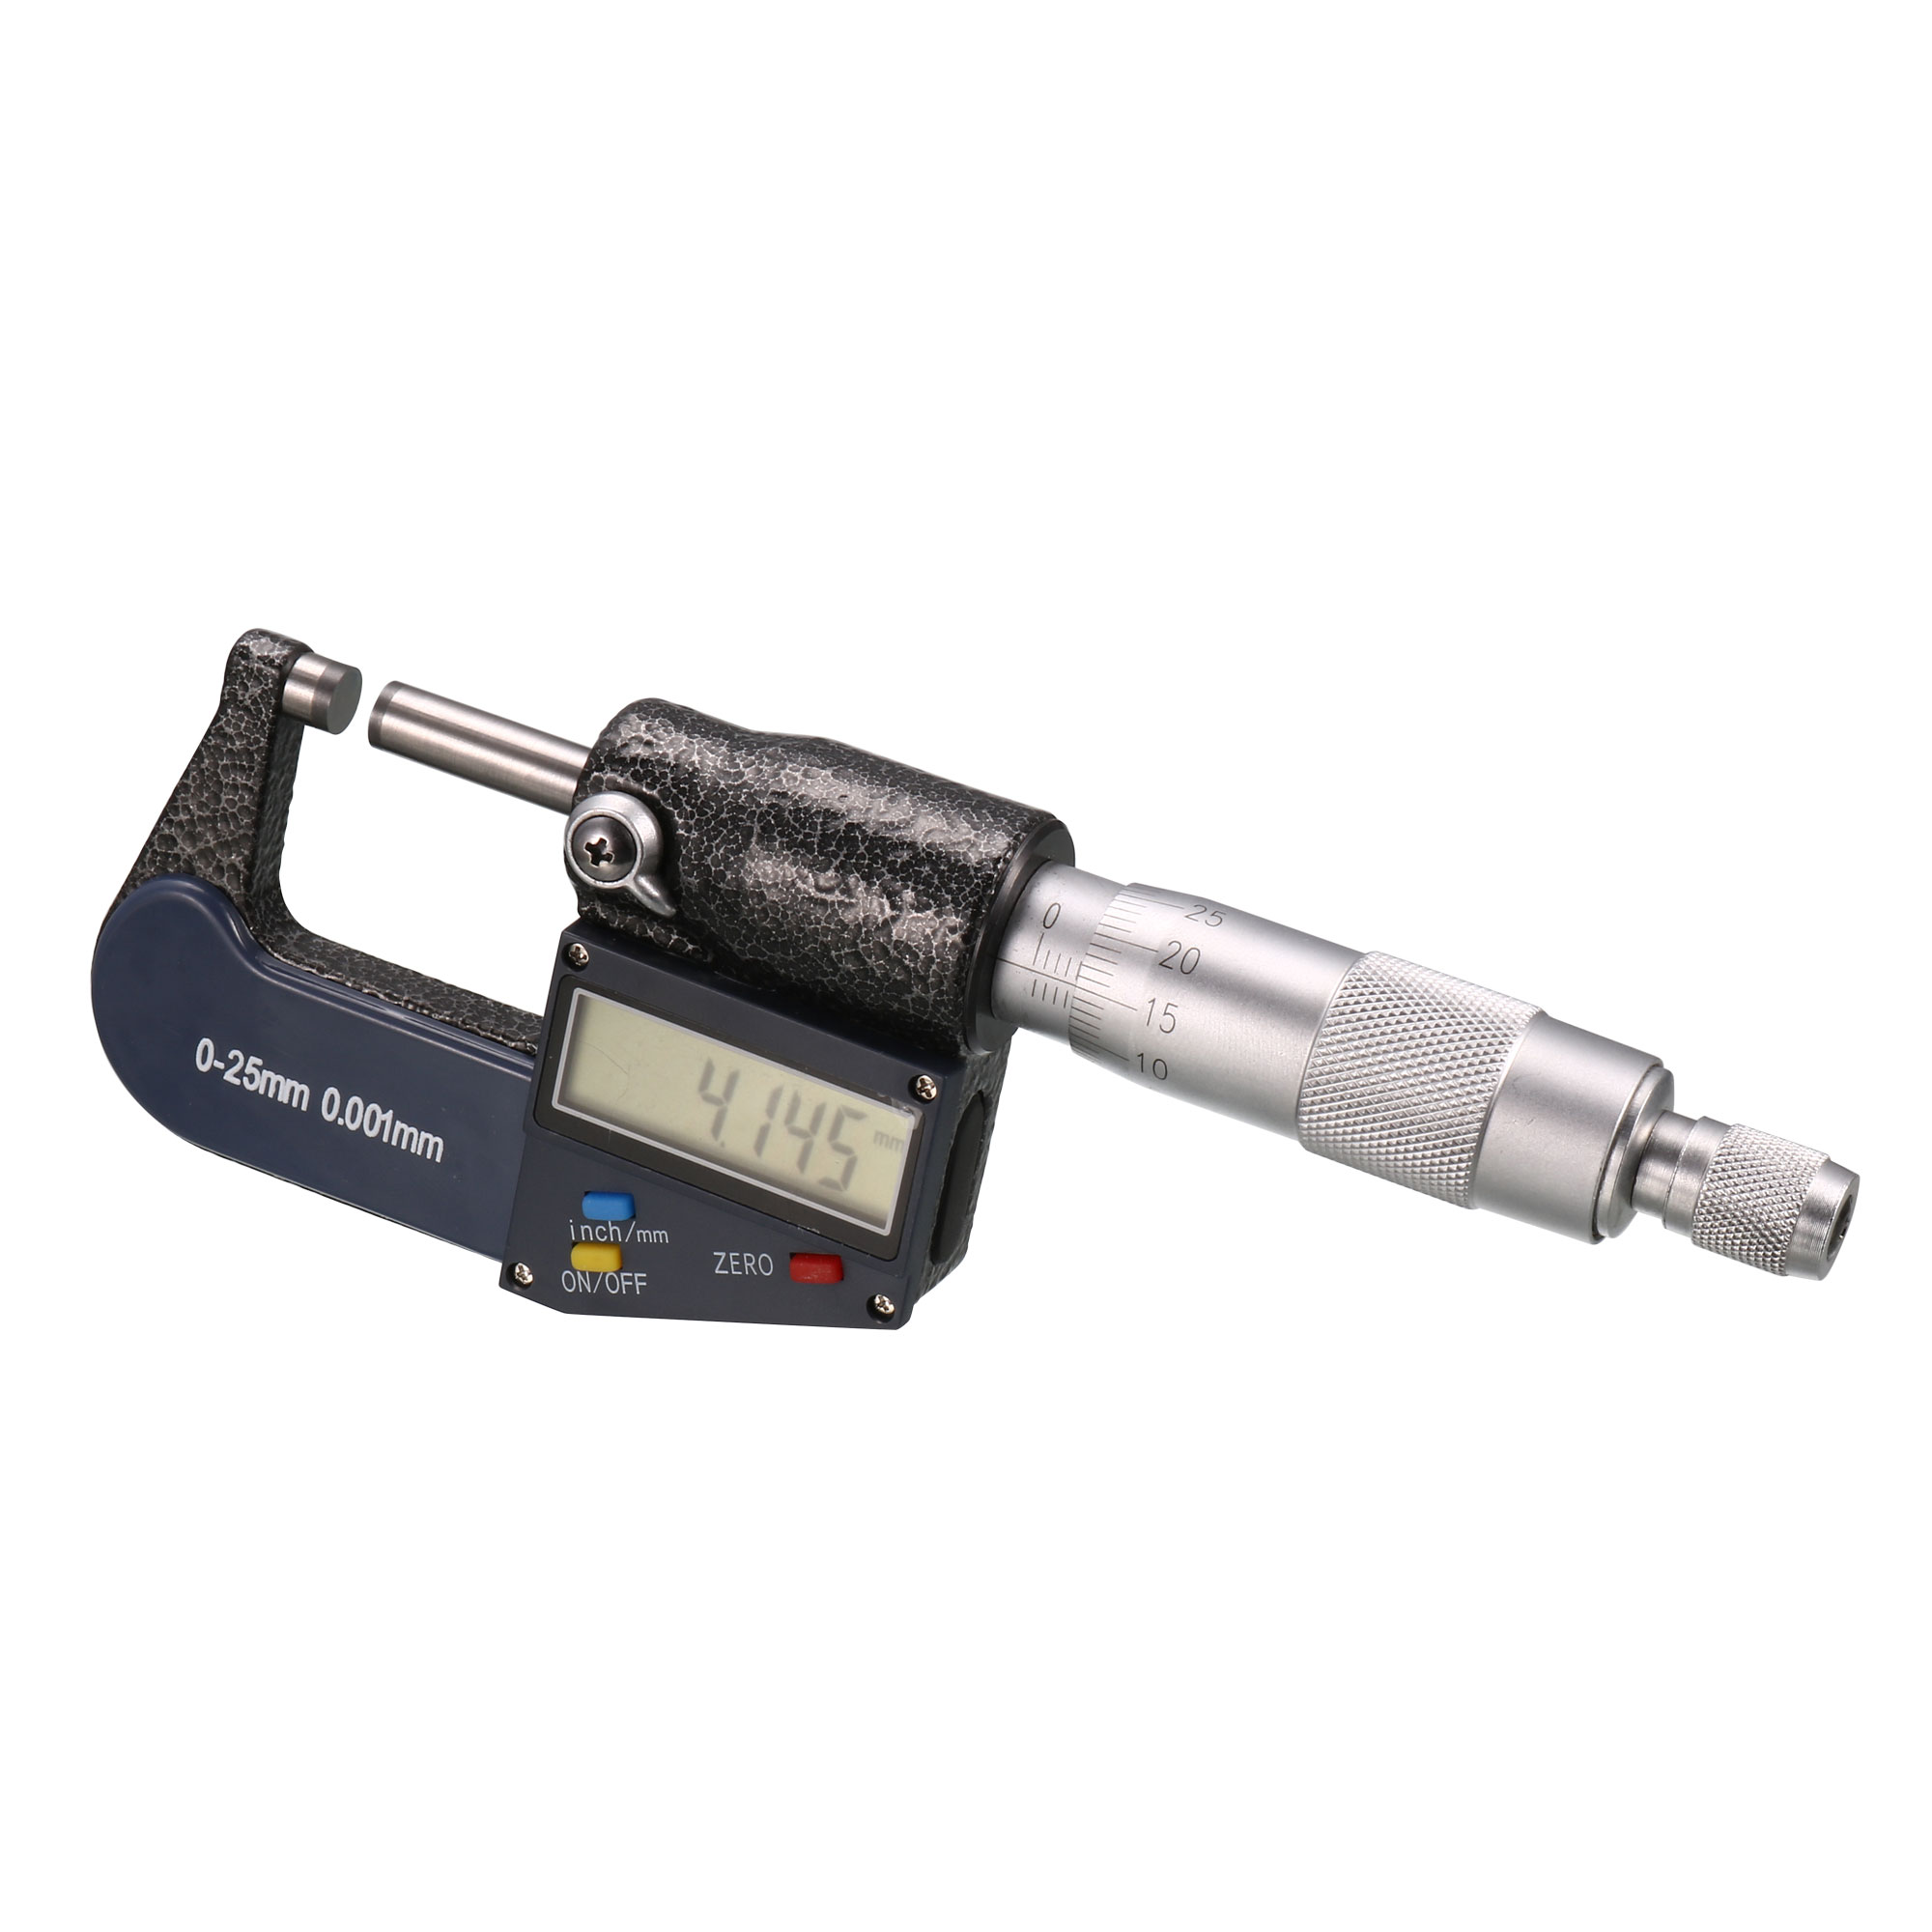 1-inch/25mm Digital Outside Micrometer w Calibration, Electronic LCD Display